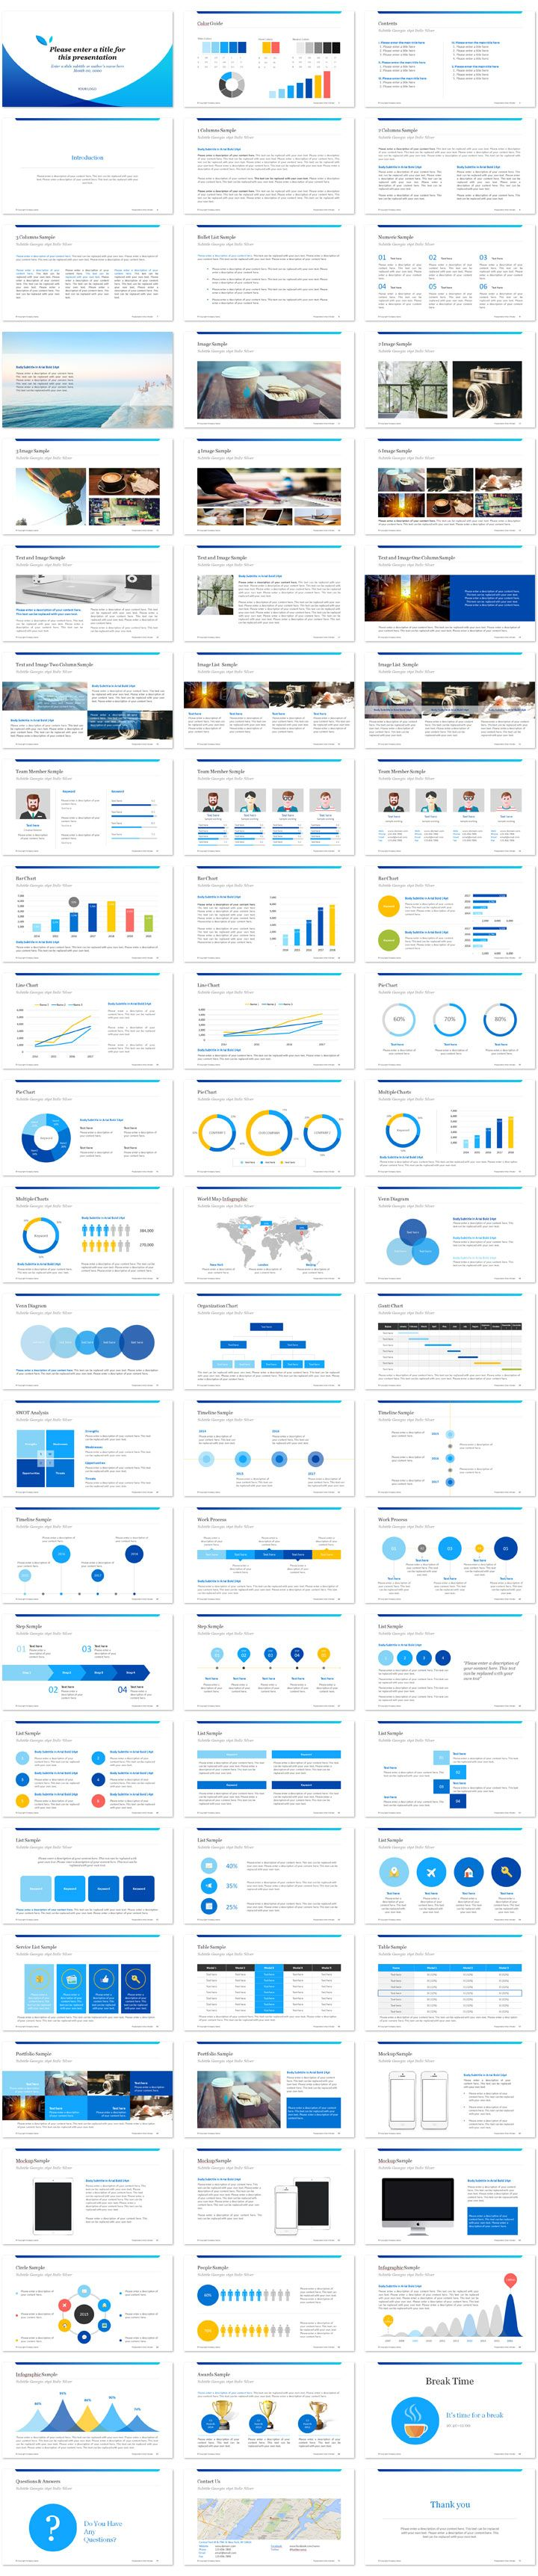 12 best powerpoint templates images on pinterest | powerpoint, Modern powerpoint